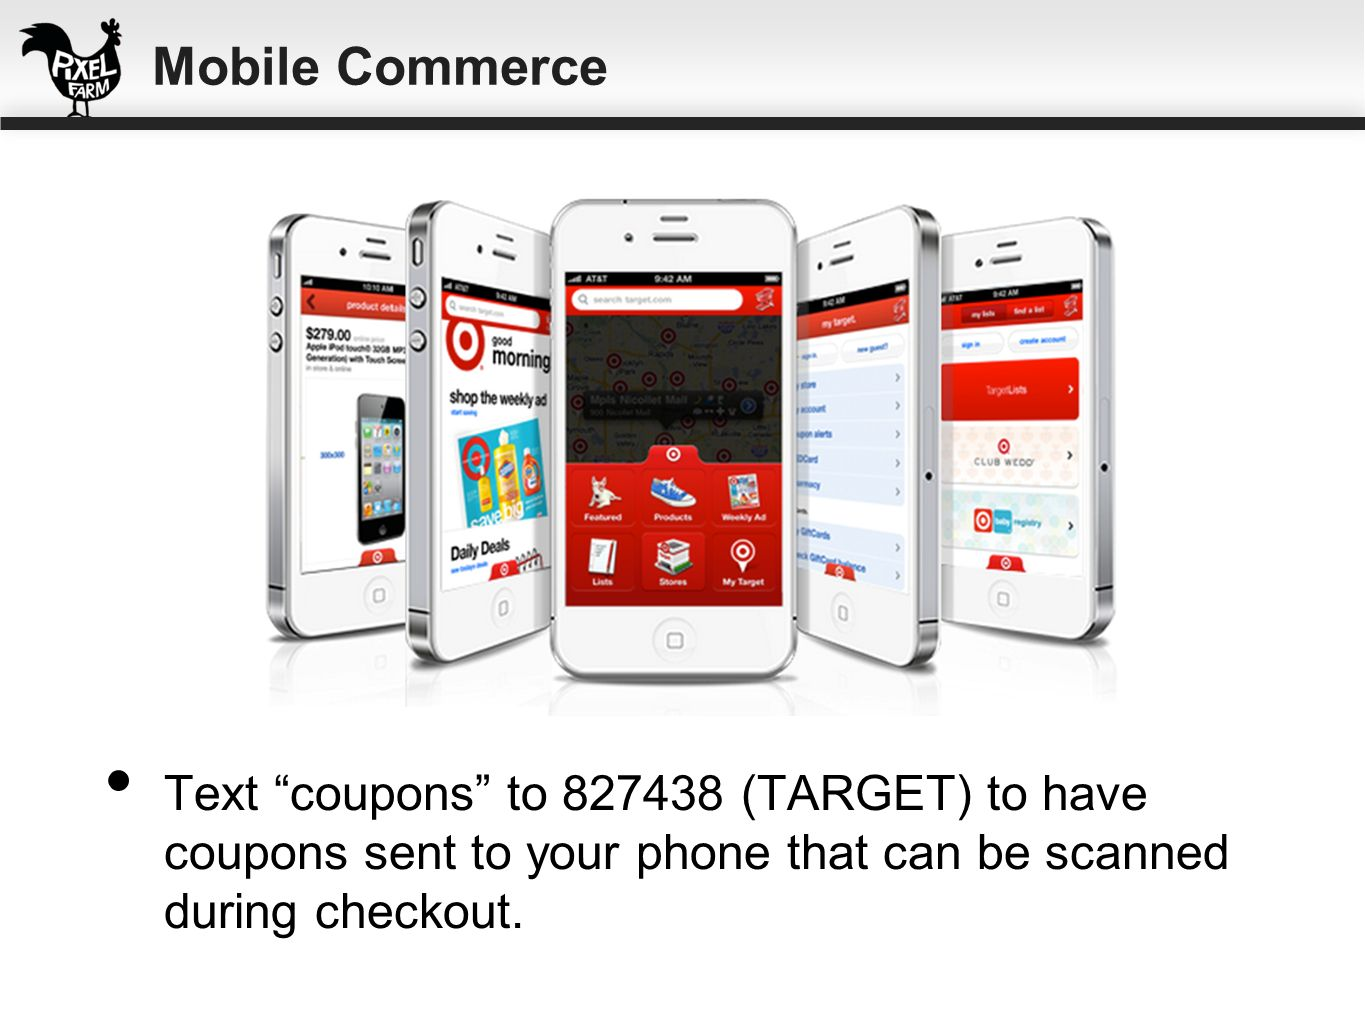 Mobile CommerceText coupons to 827438 (TARGET) to have coupons sent to your phone that can be scanned during checkout.